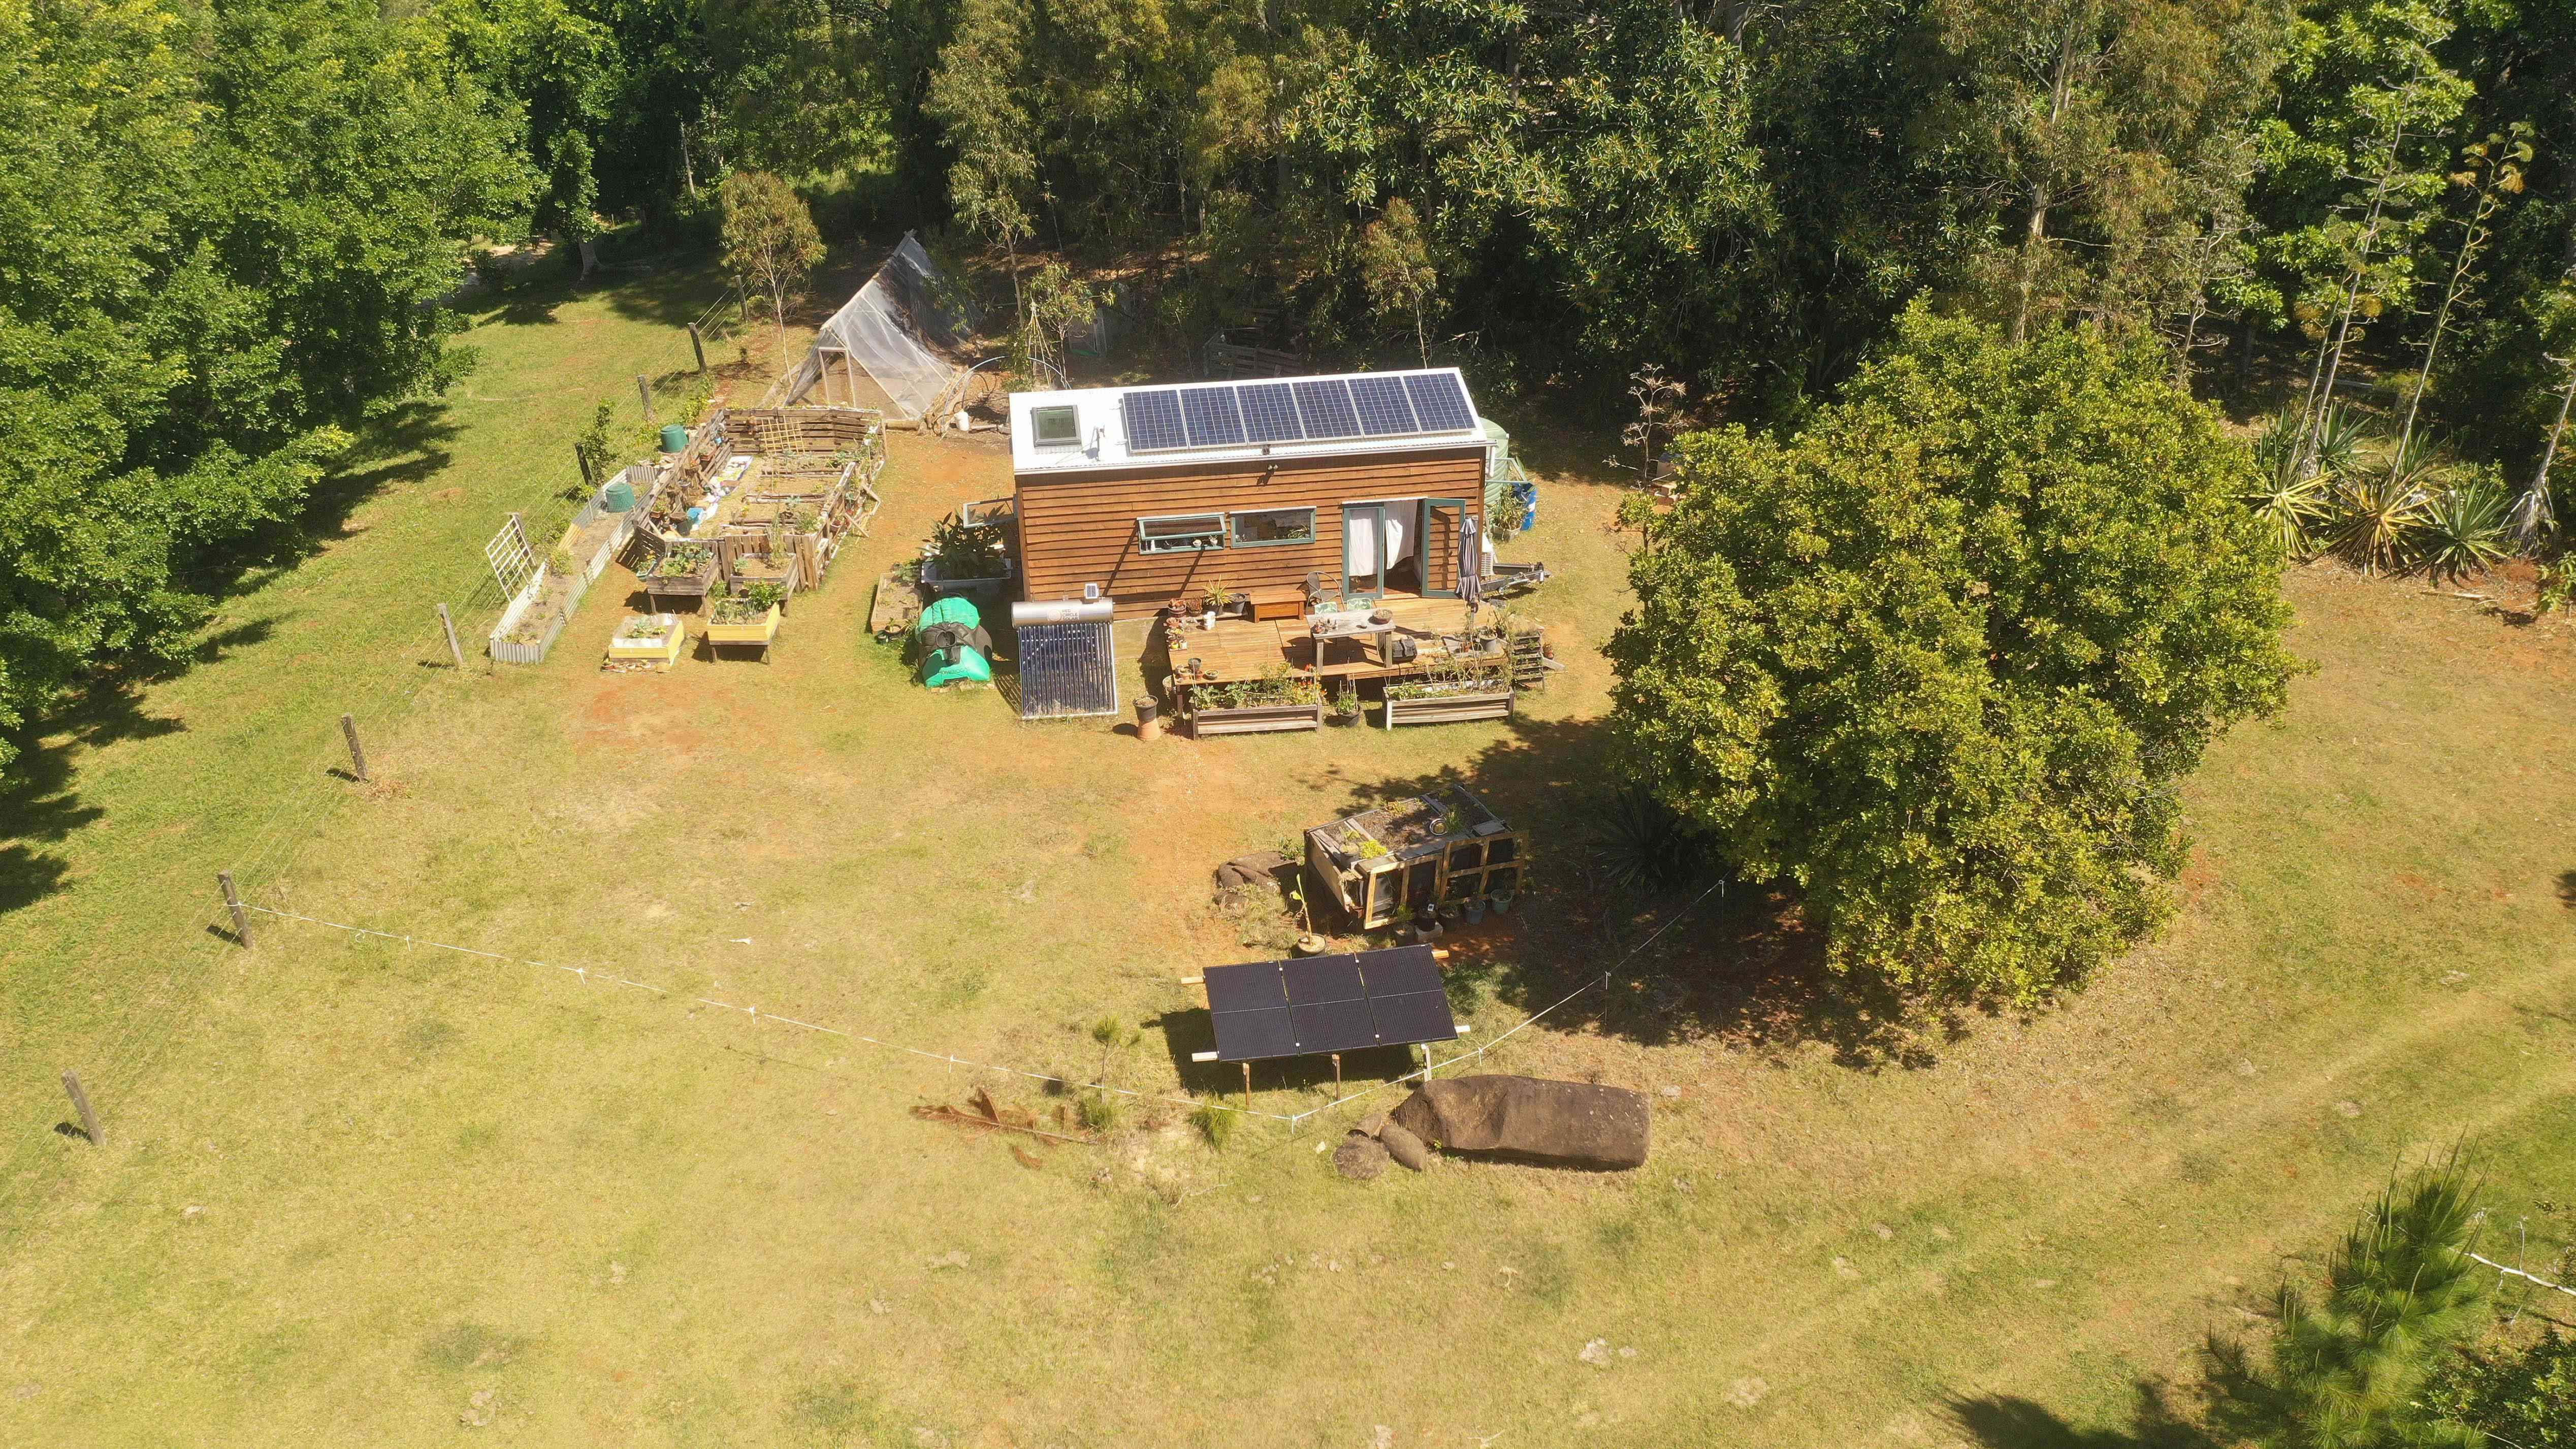 Tiny home off grid